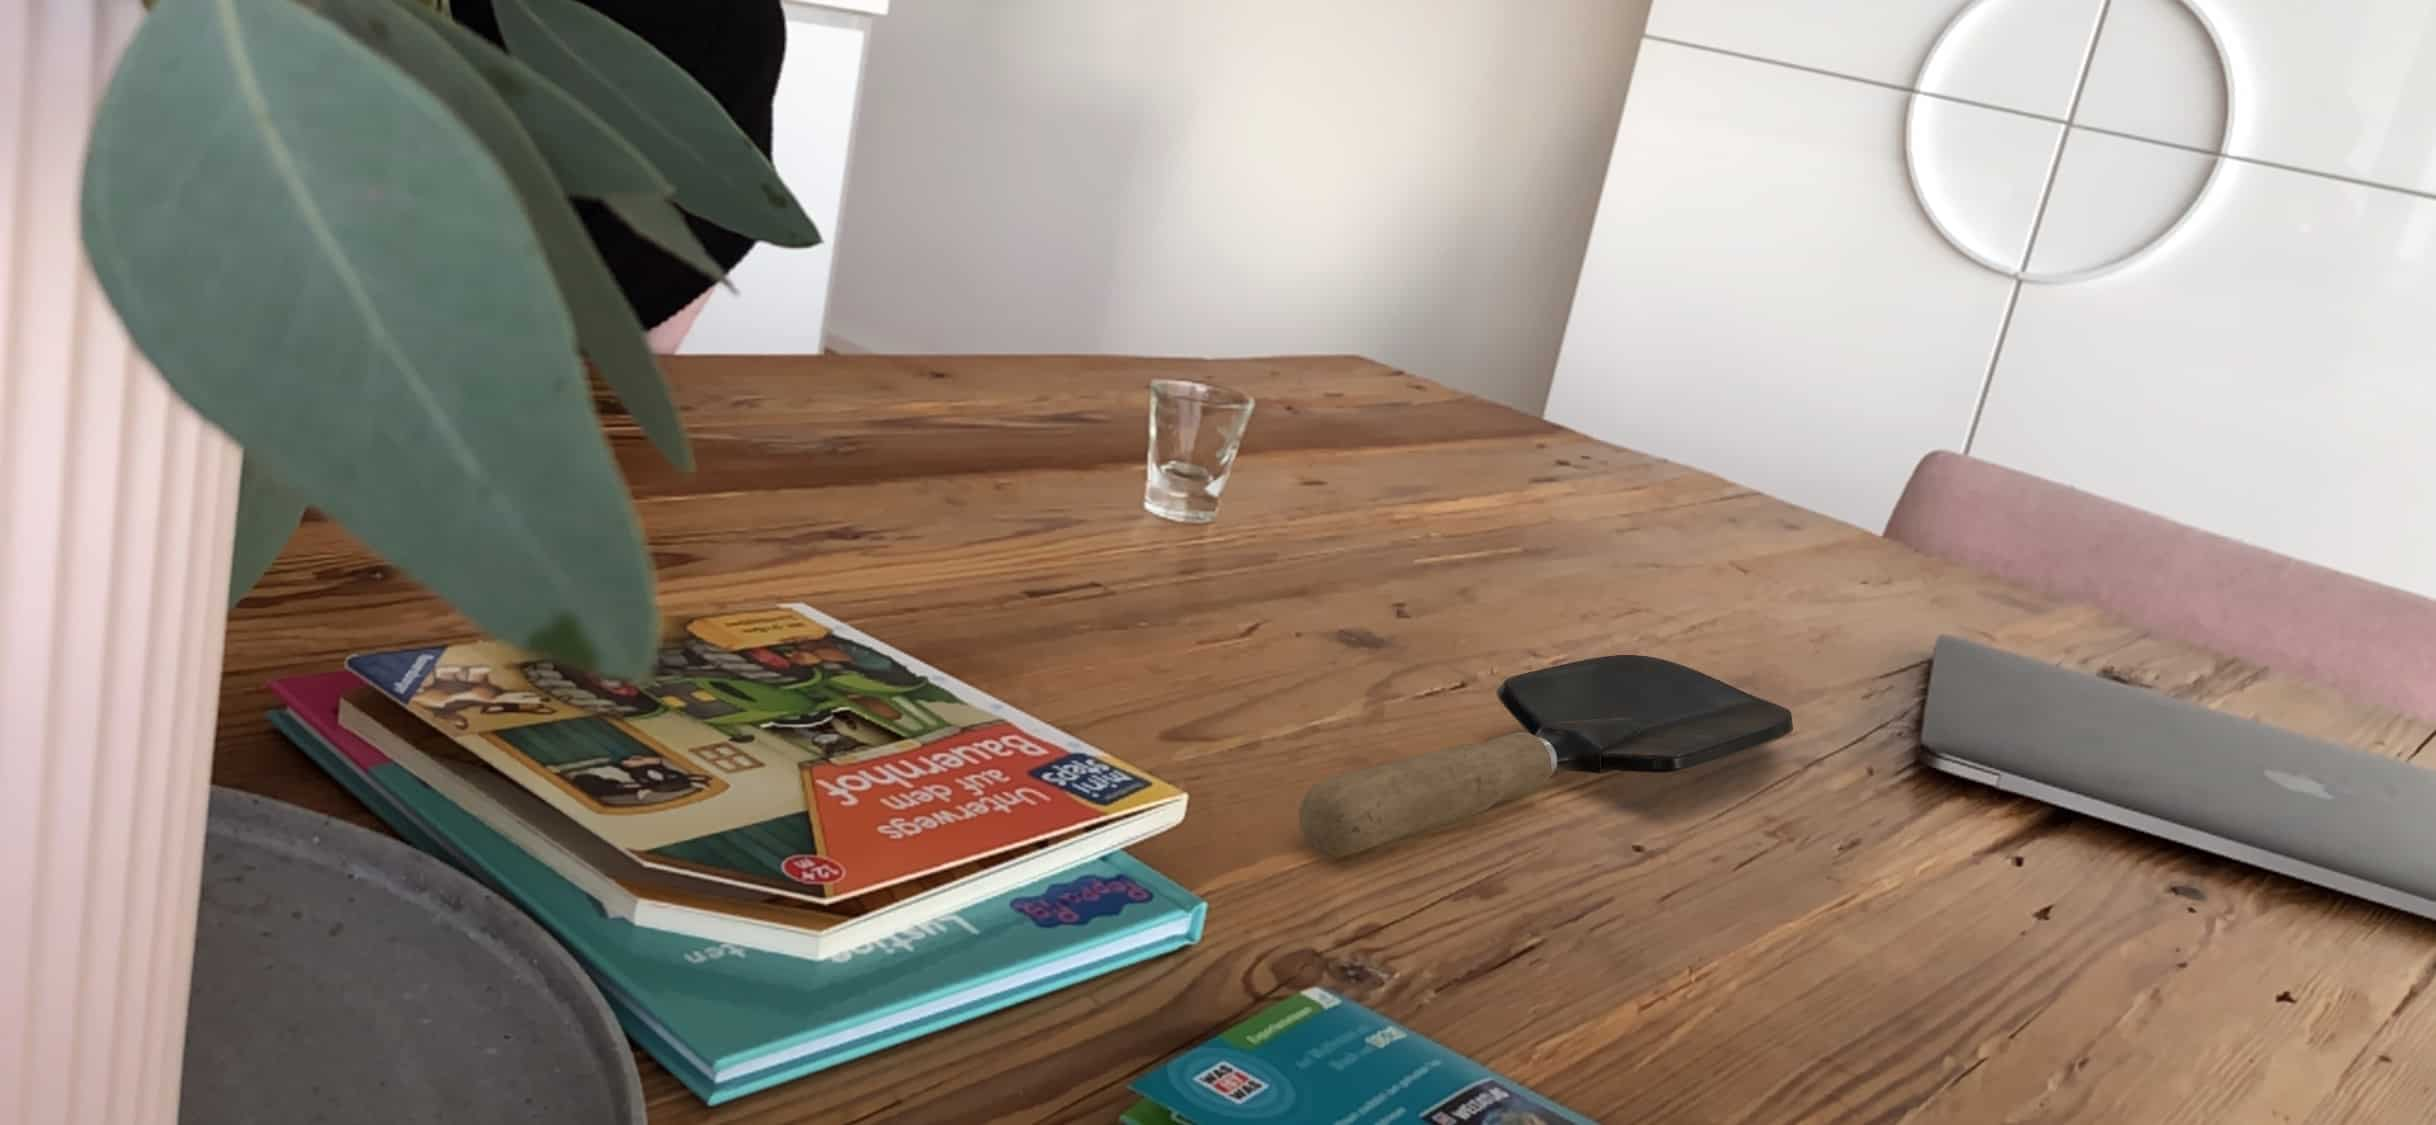 Beispiel 3D Pflanzkelle Augmented Reality Apple AR Kit